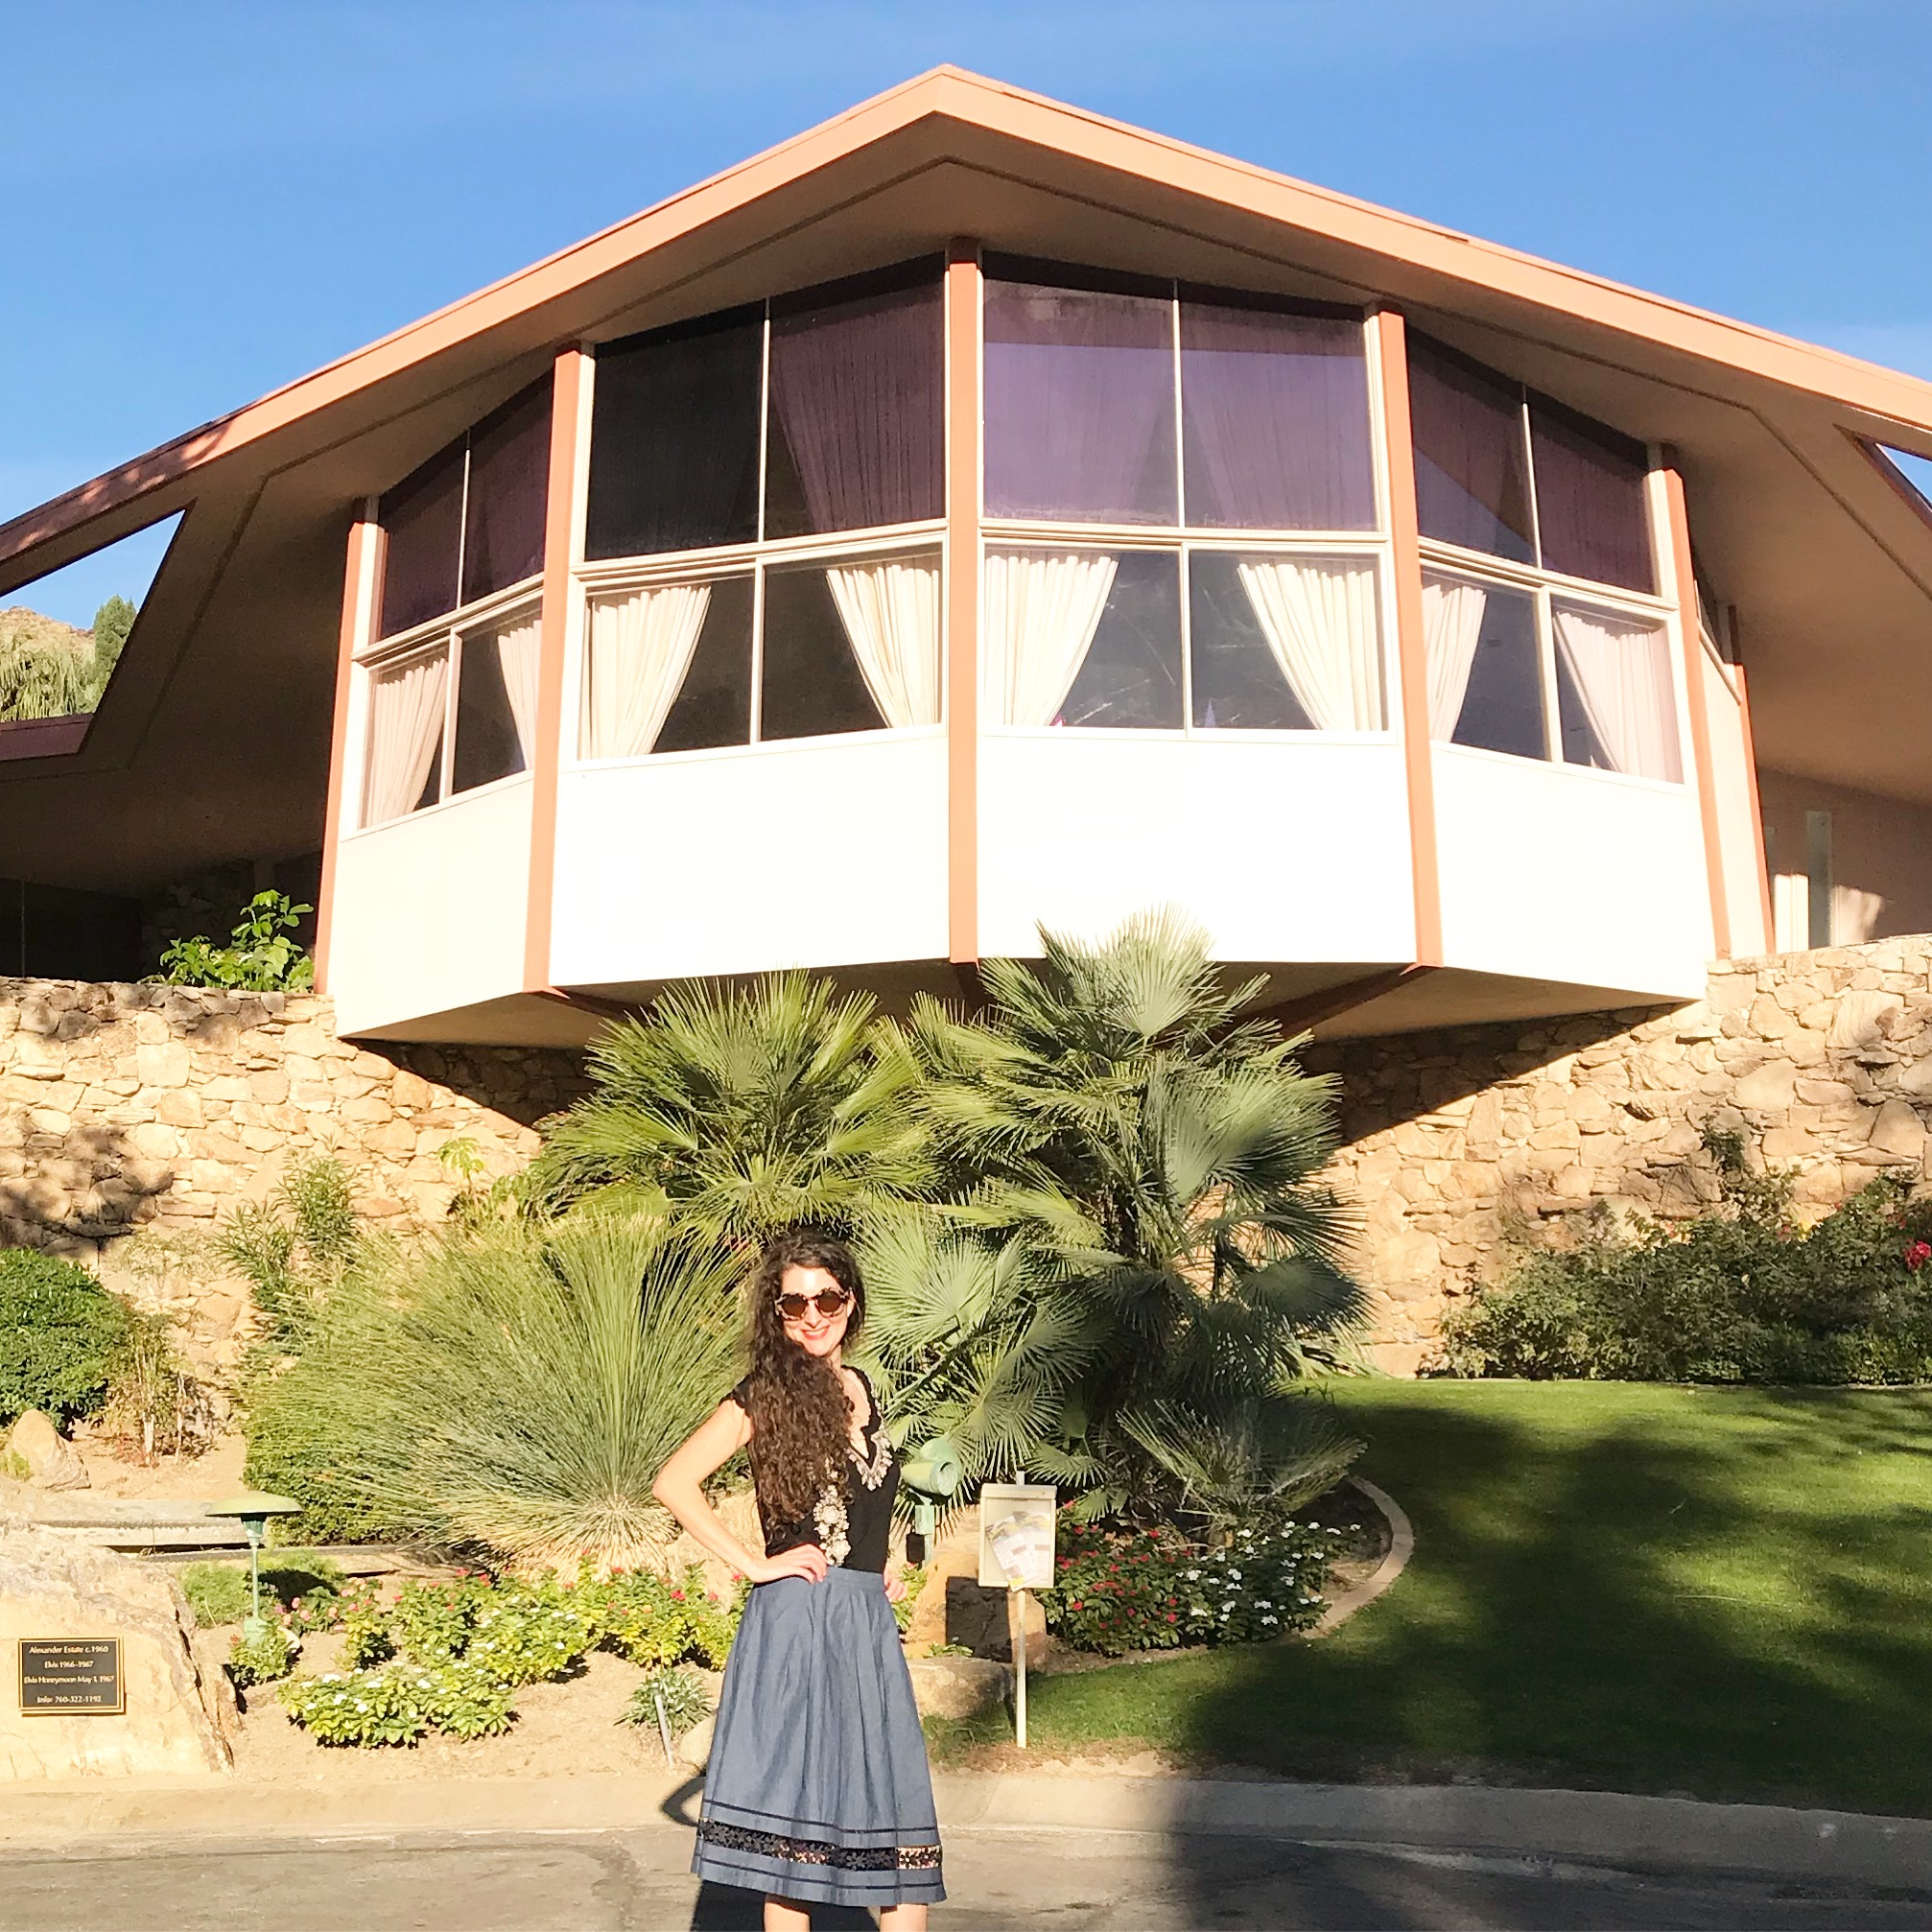 Elvis Presley's Palm Springs House. Architectural tour of palm springs.jpg